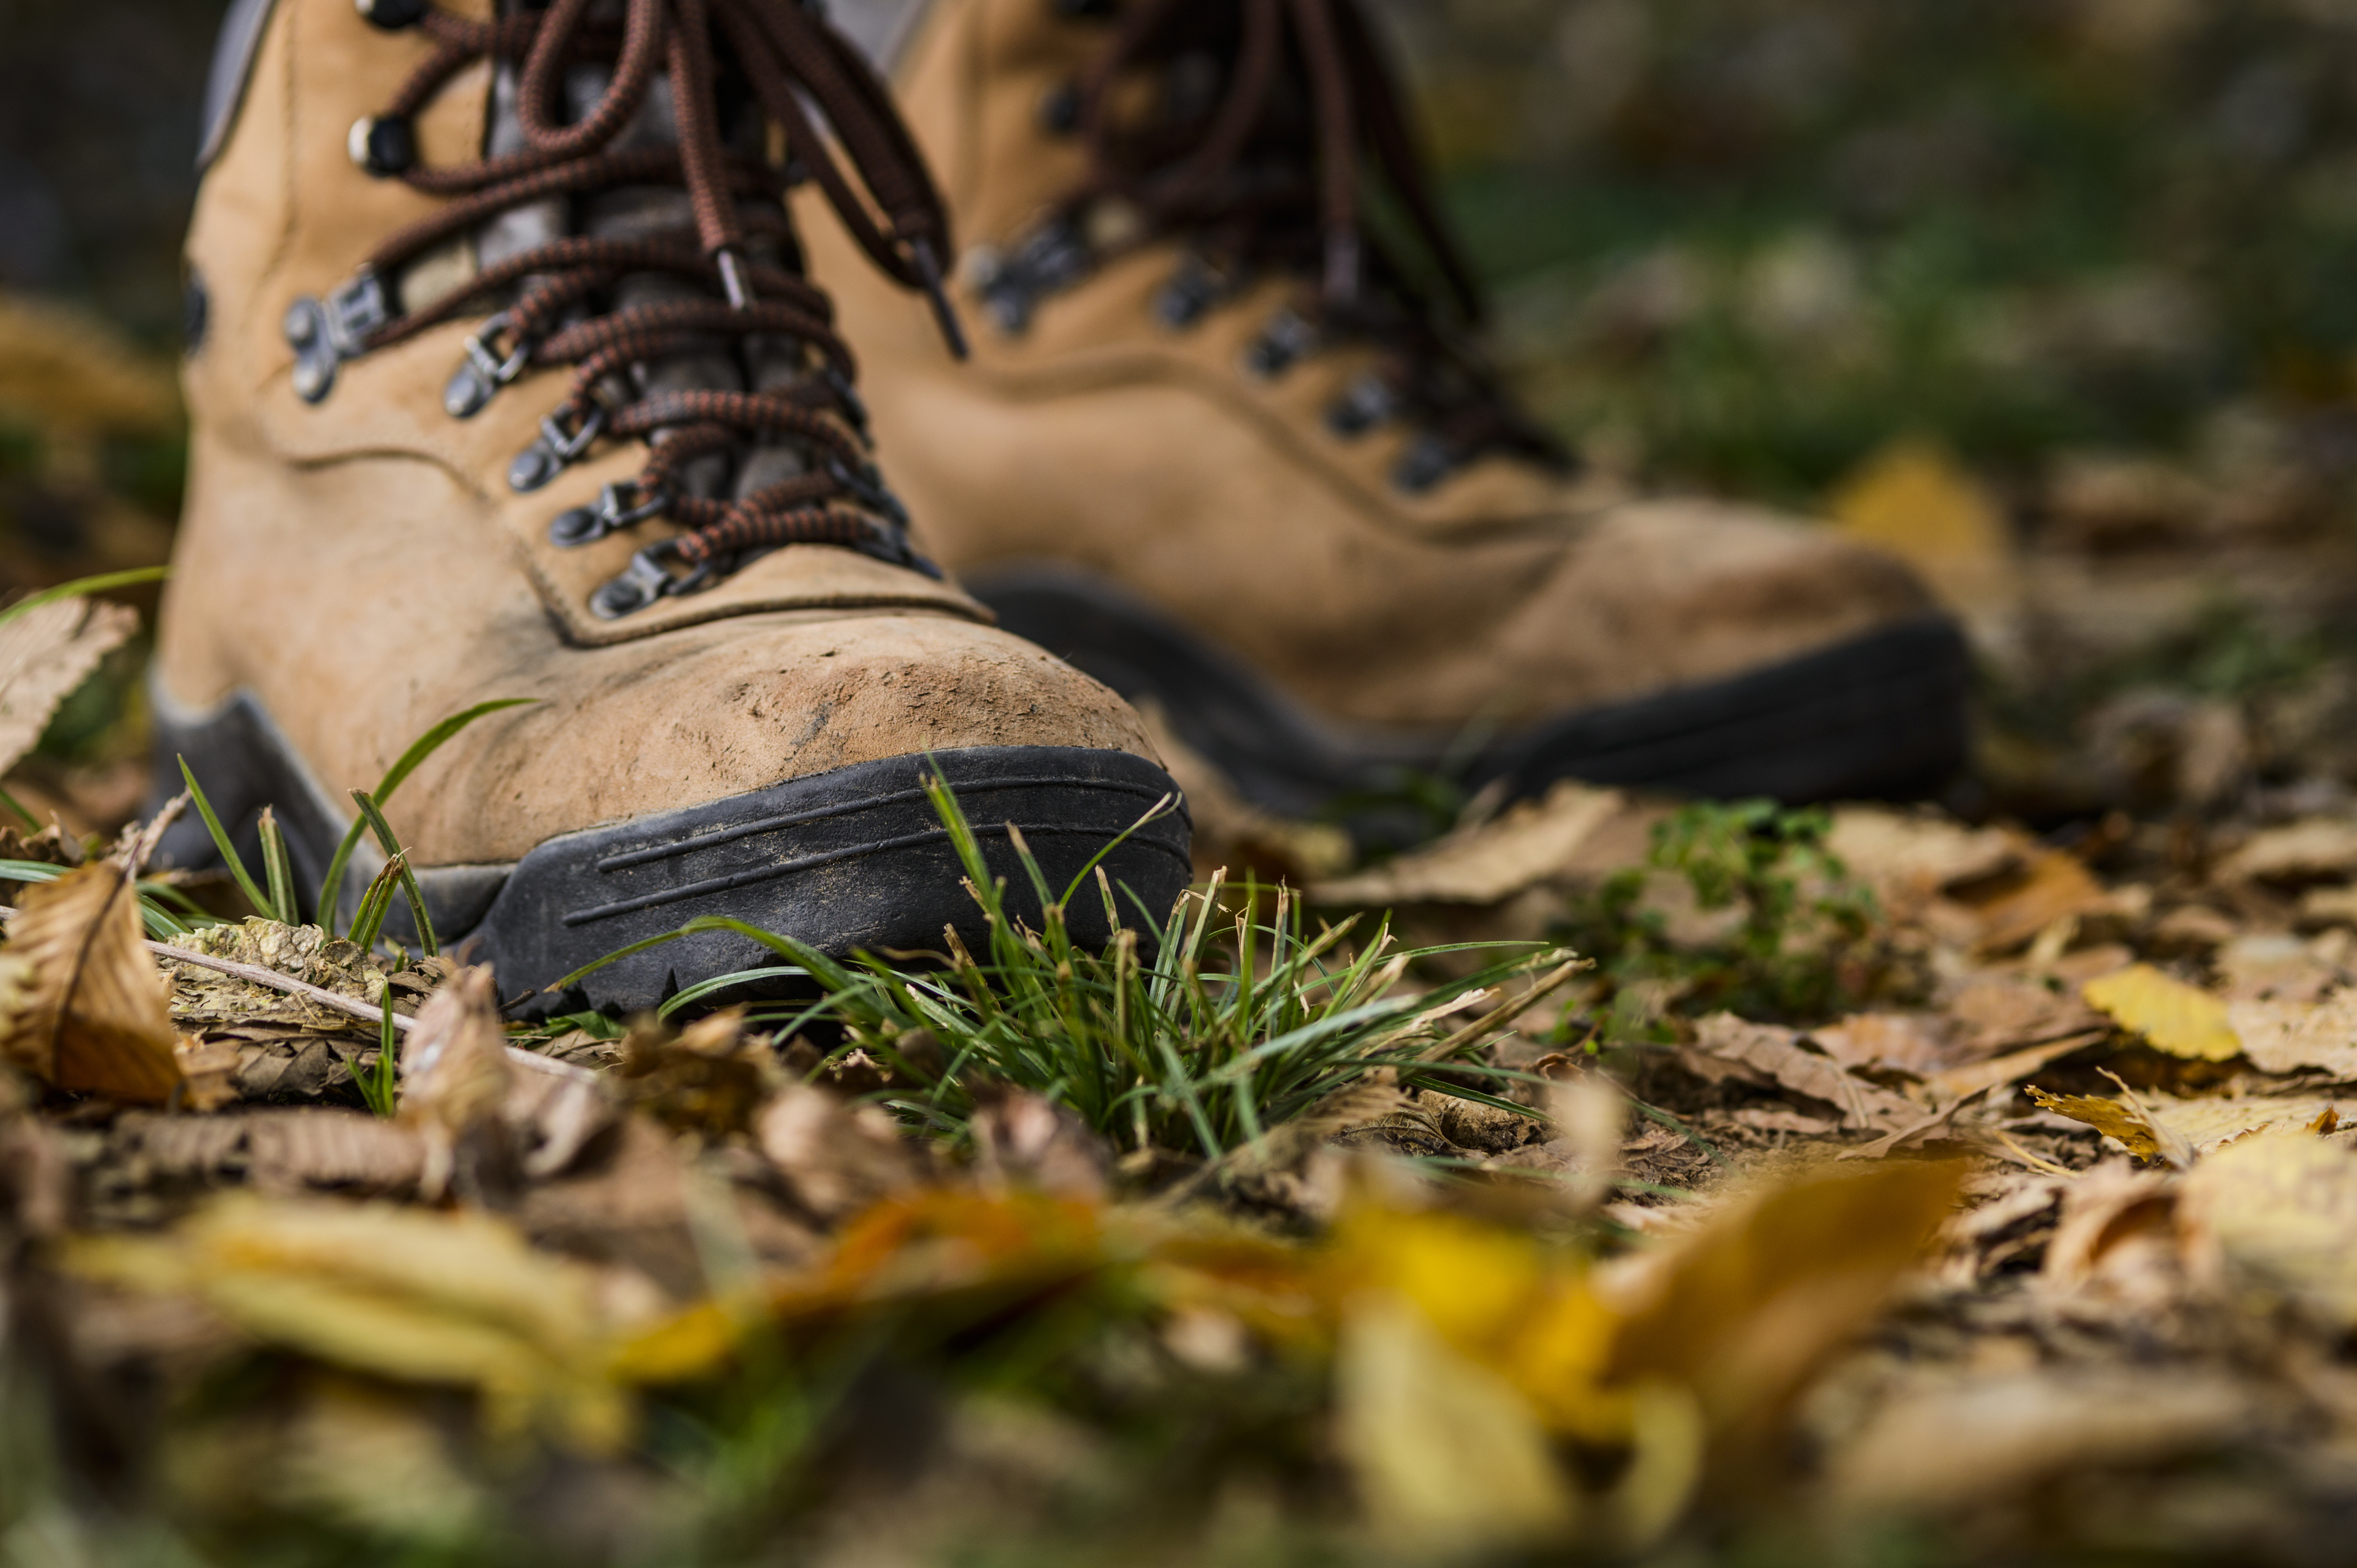 A pair of hiking boots on top of a bed of grass and leaves.